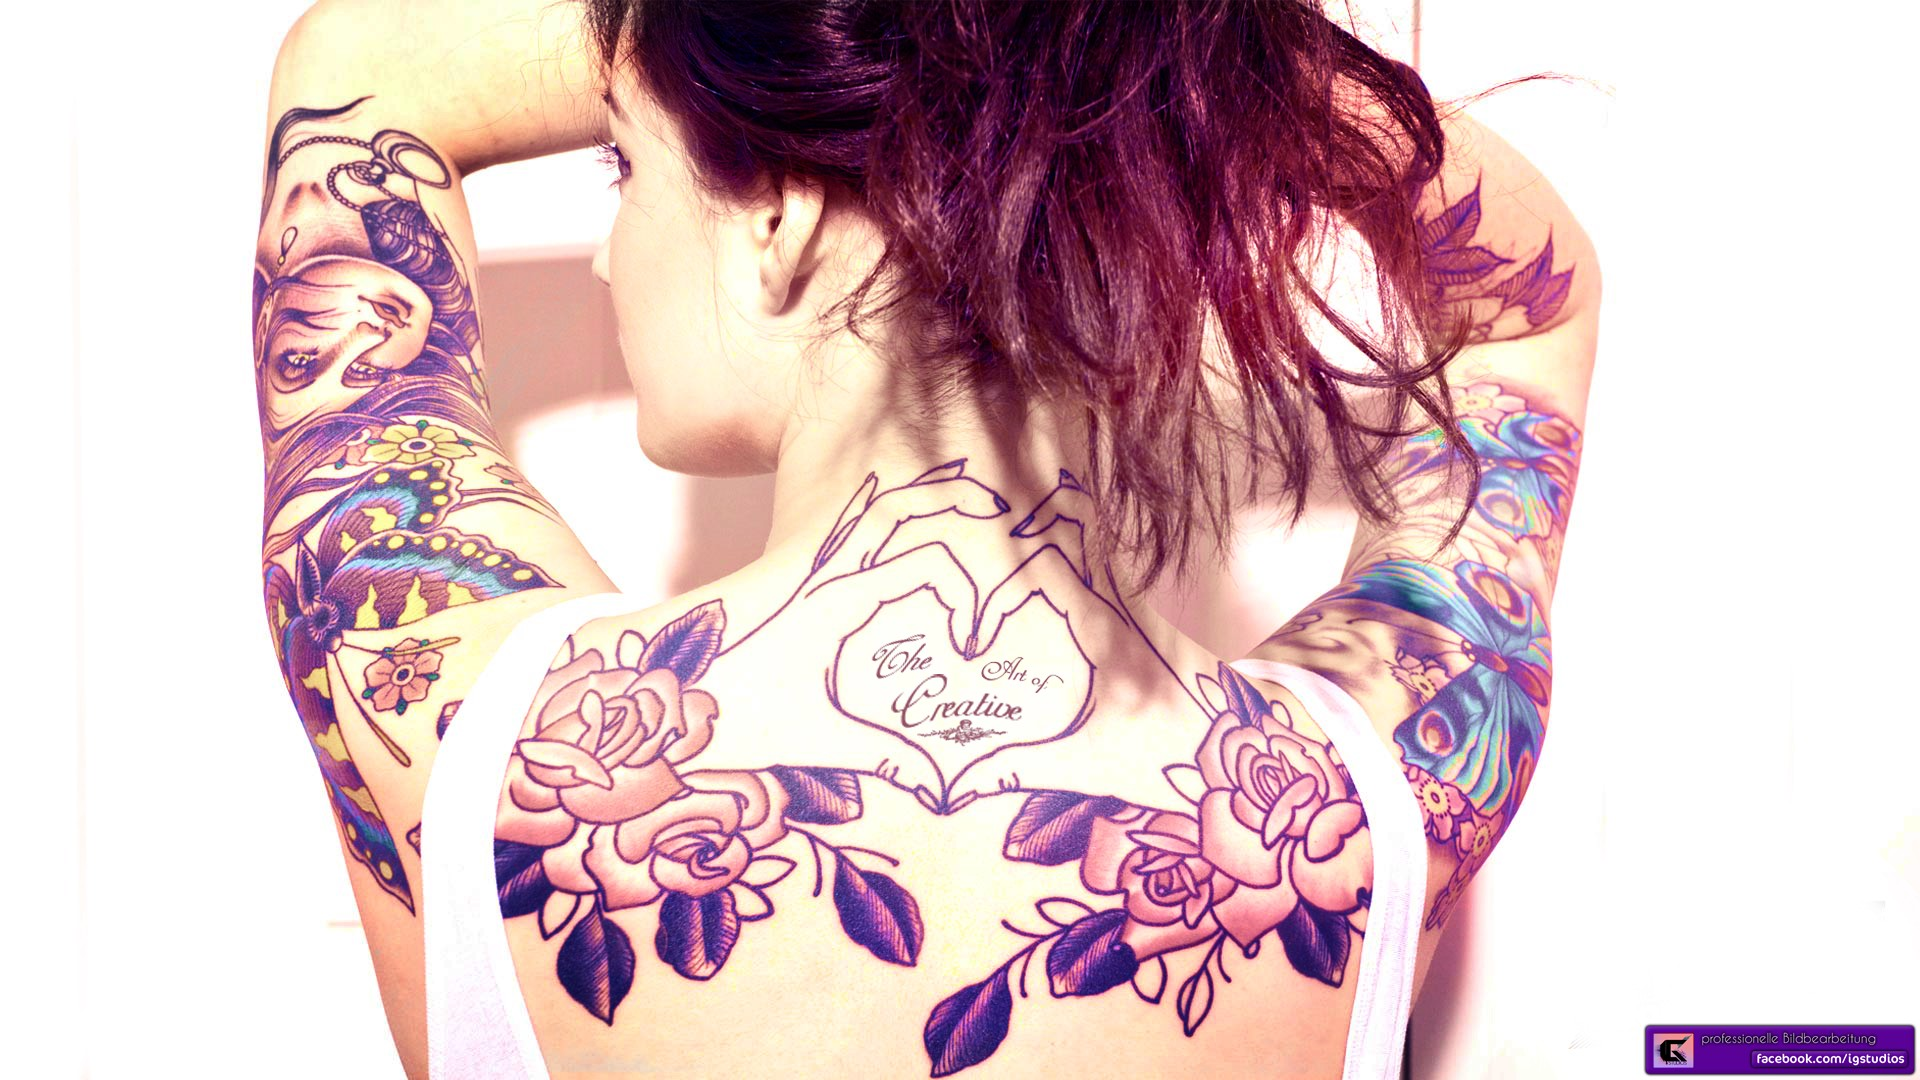 tattoo girl hd wallpaper - photo #30